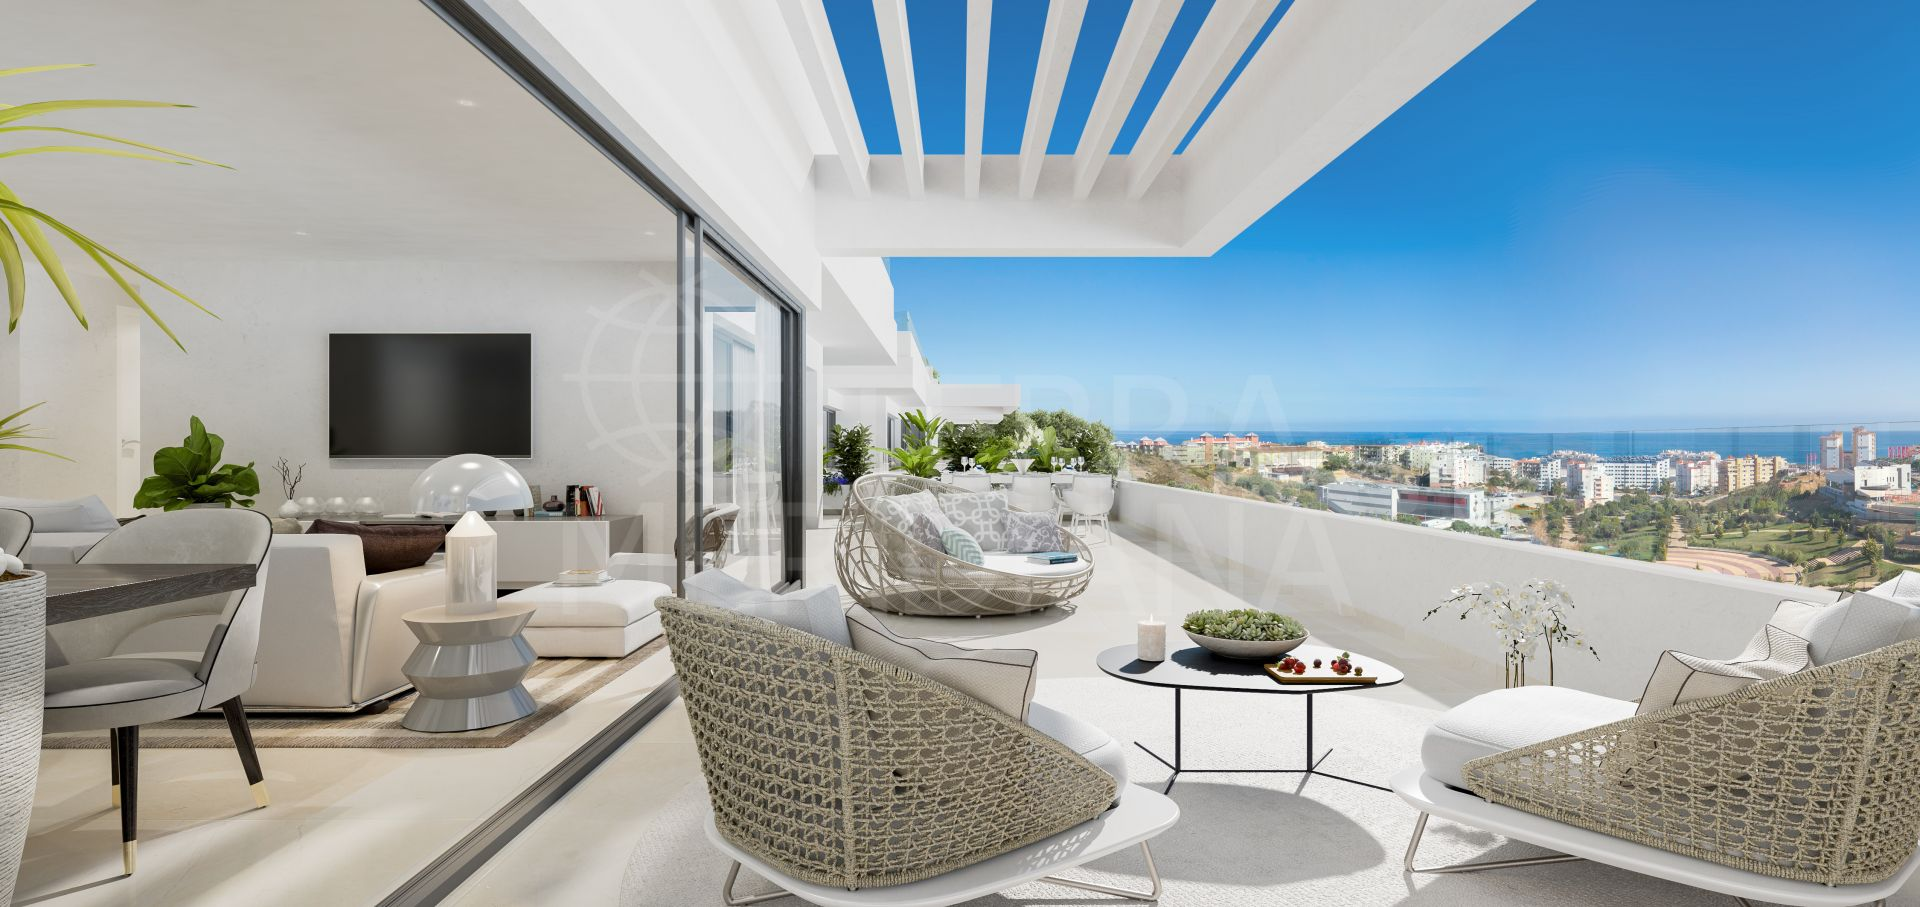 South Bay Estepona, Estepona - South Bay is an inspirational new boutique development of elegant and spacious apartments and penthouses in an elevated position in the heart of Estepona with gorgeous views